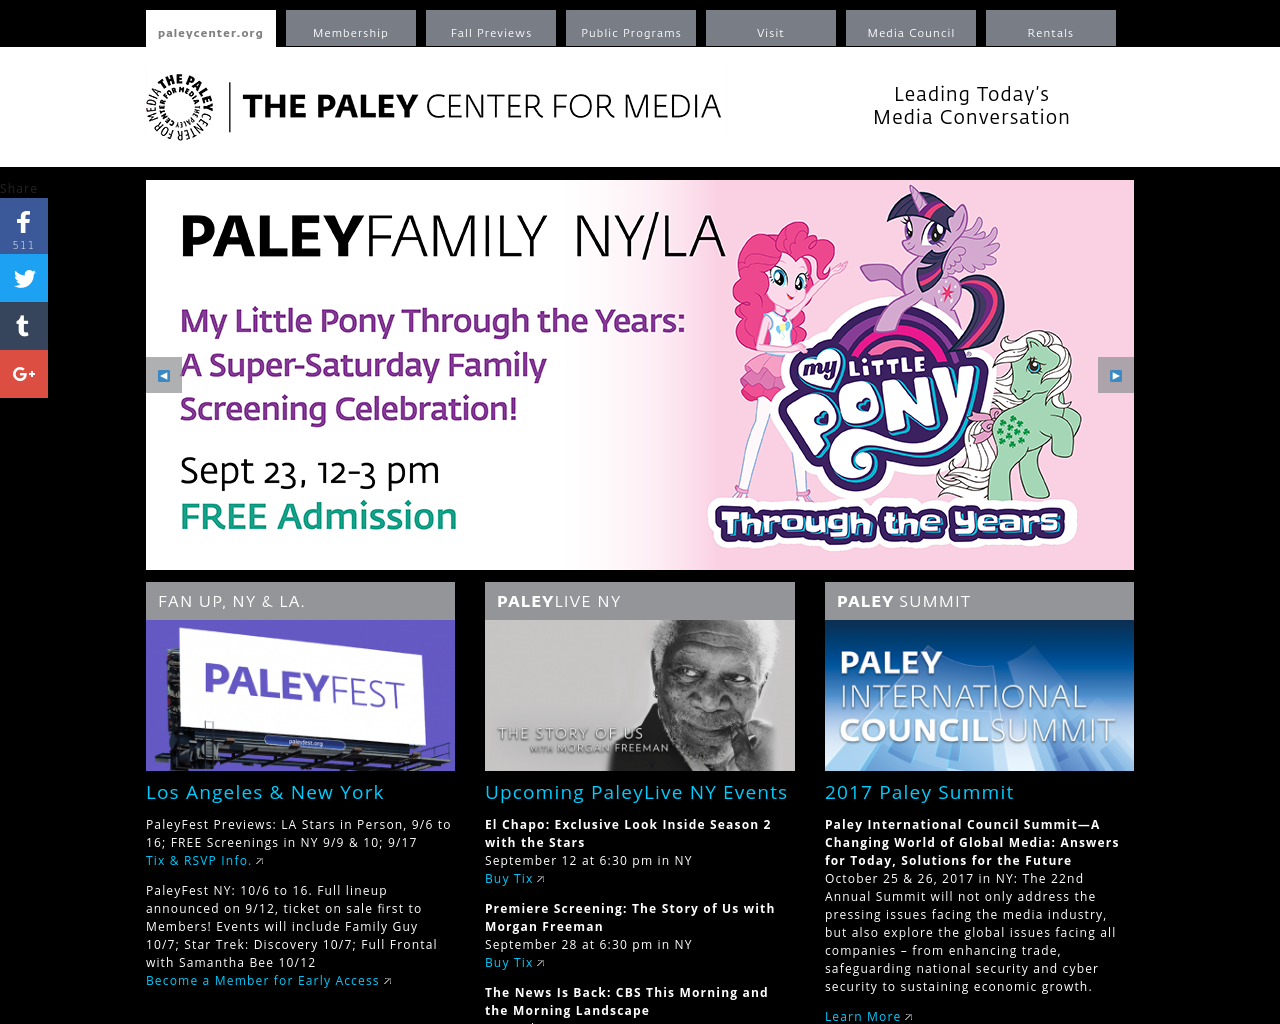 PaleyCenter.org-Advertising-Reviews-Pricing